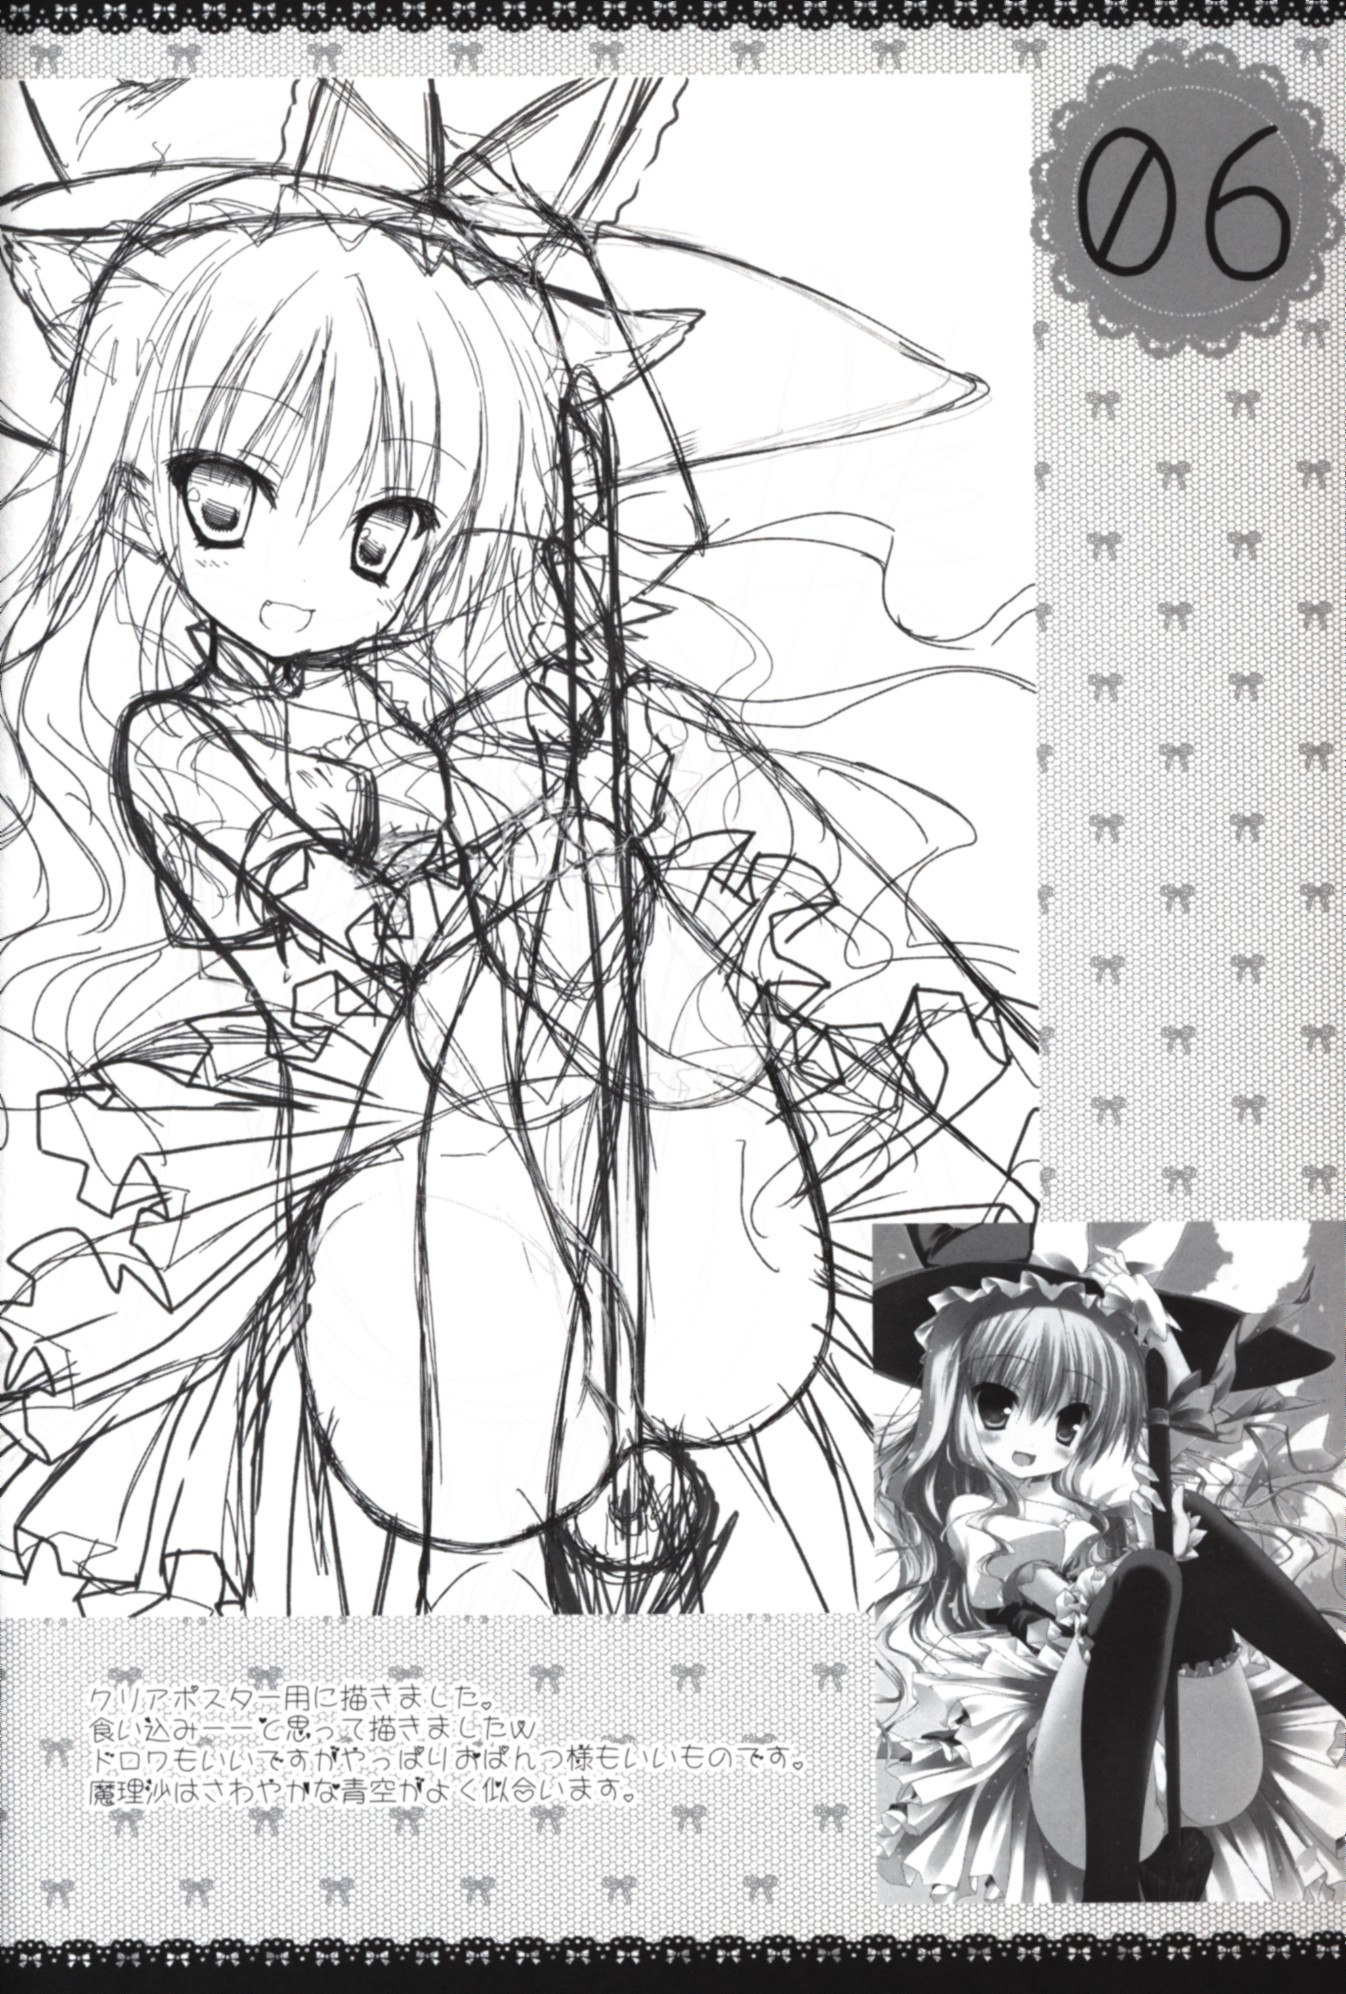 Doujinshi - Touhou Project / Hakurei Reimu (BLACK AND WHITE 2012.05.27) / CHOCOLATE CUBE/cube sugar